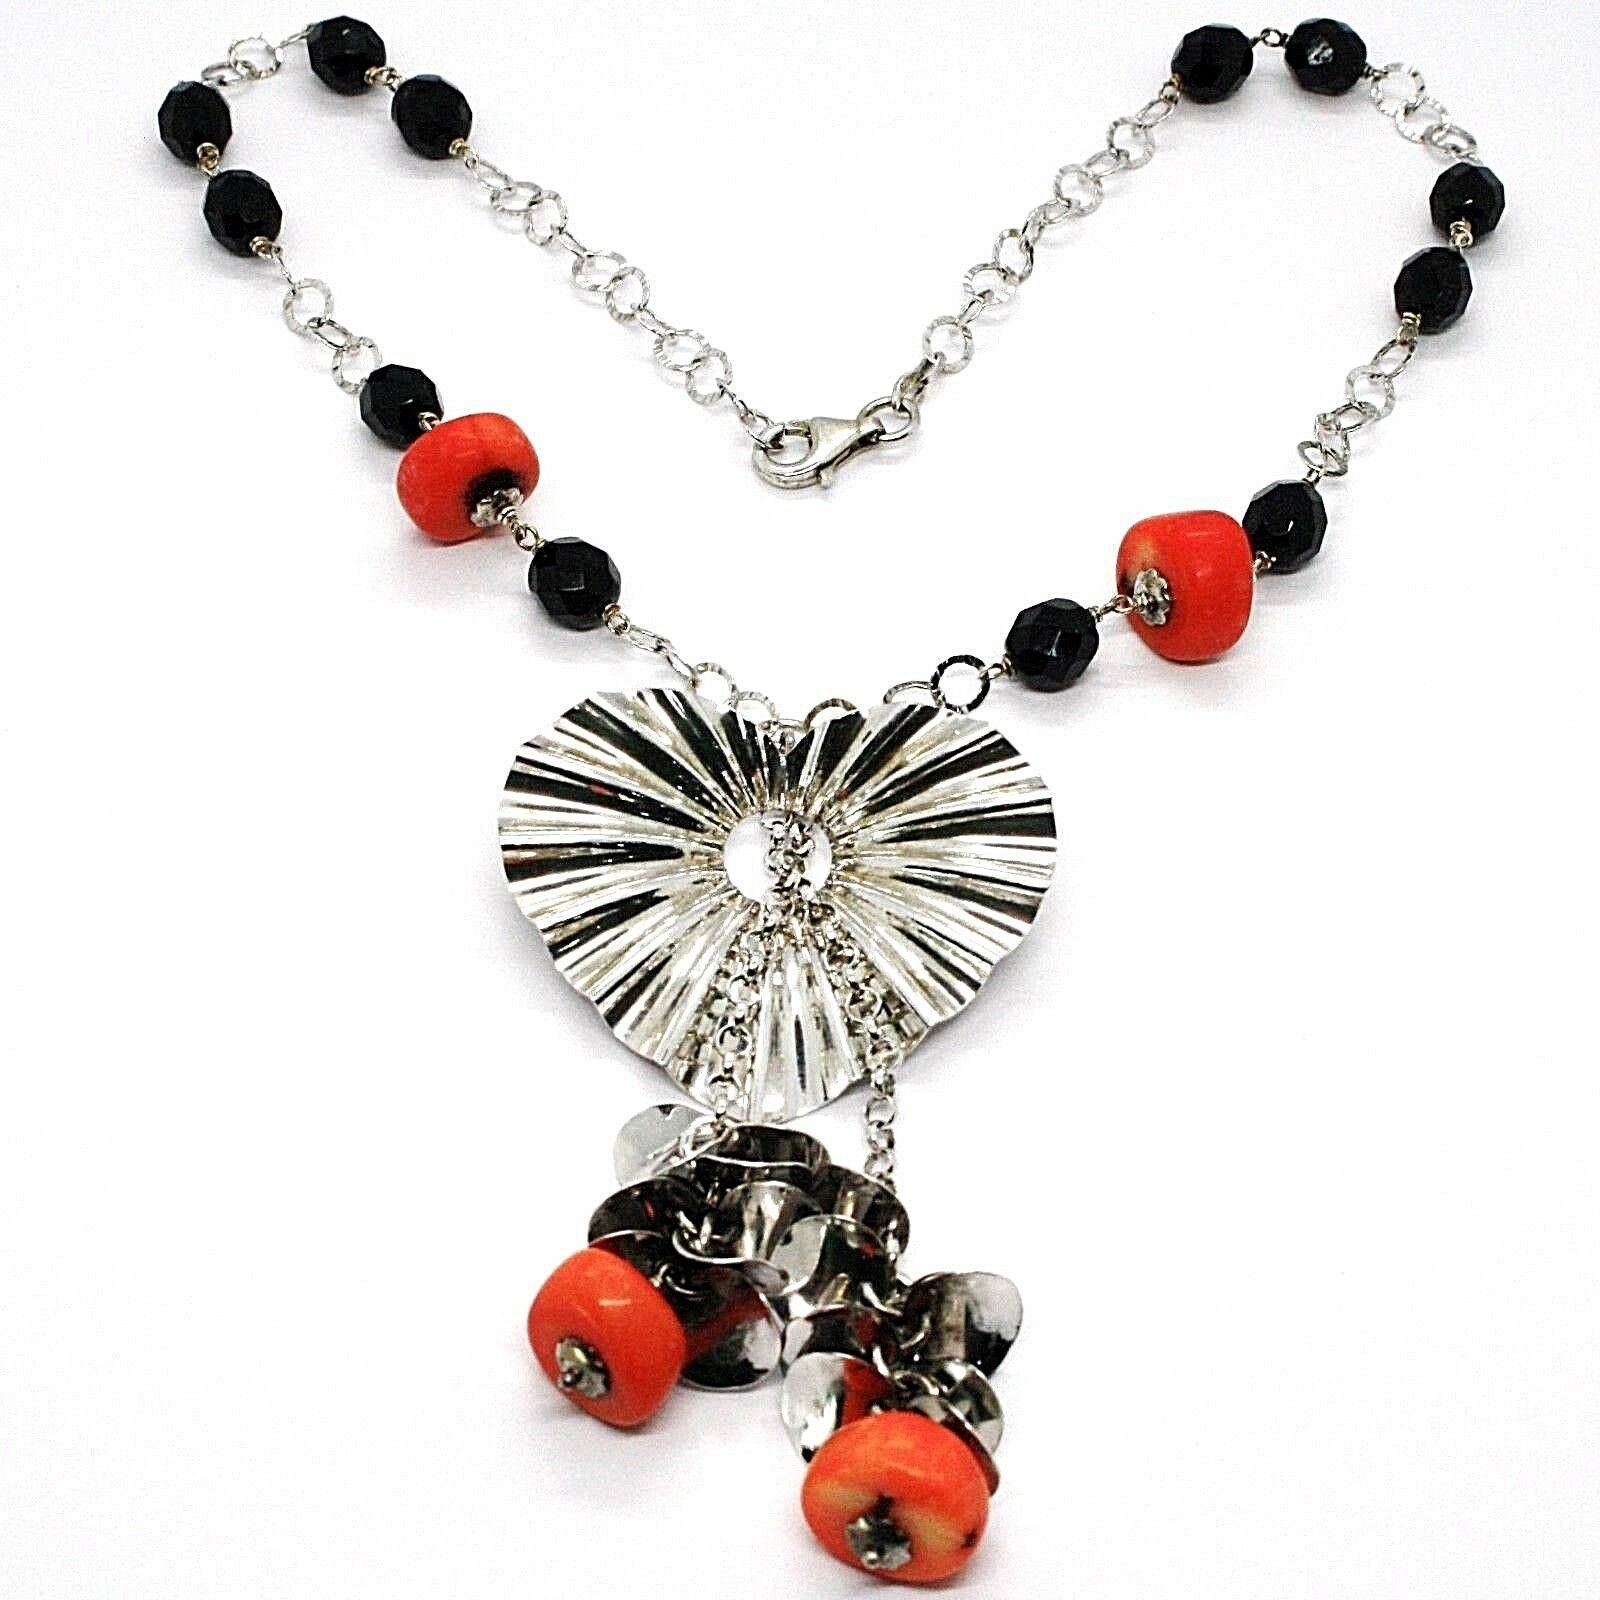 Necklace Silver 925, Heart Wavy, Cascade of Petals, Bunch, Coral